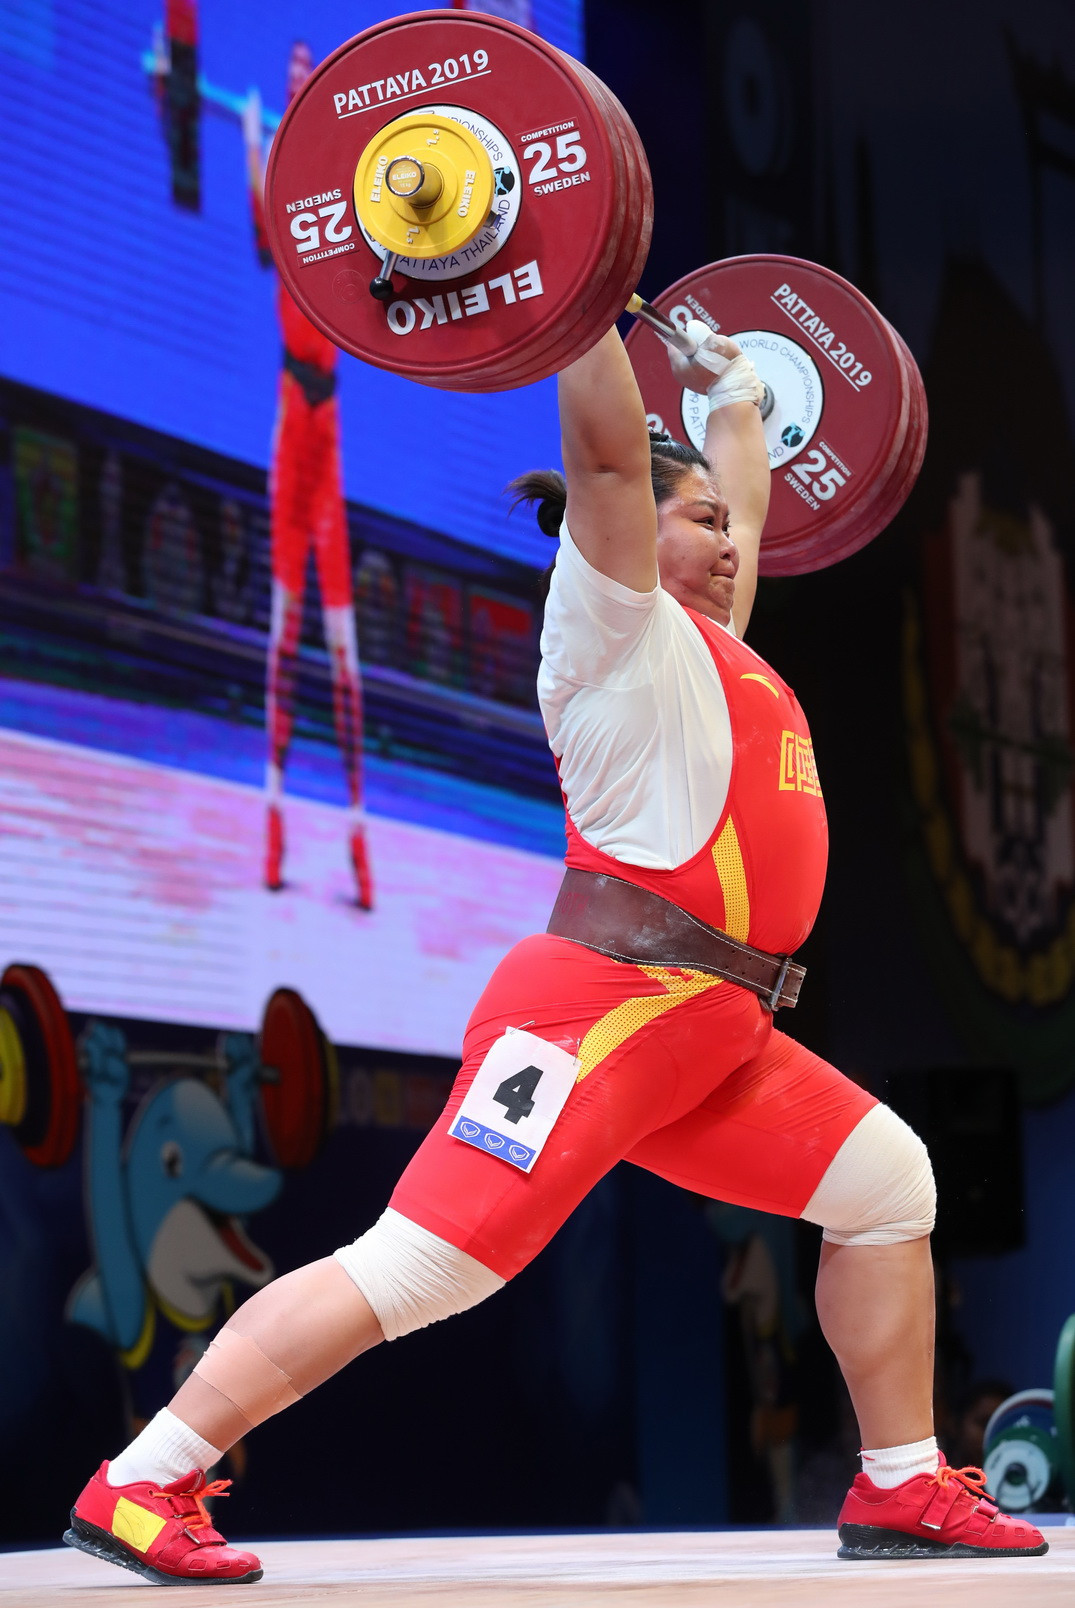 The overall bronze medallist was Rio 2016 Olympic champion Meng Suping of China ©IWF